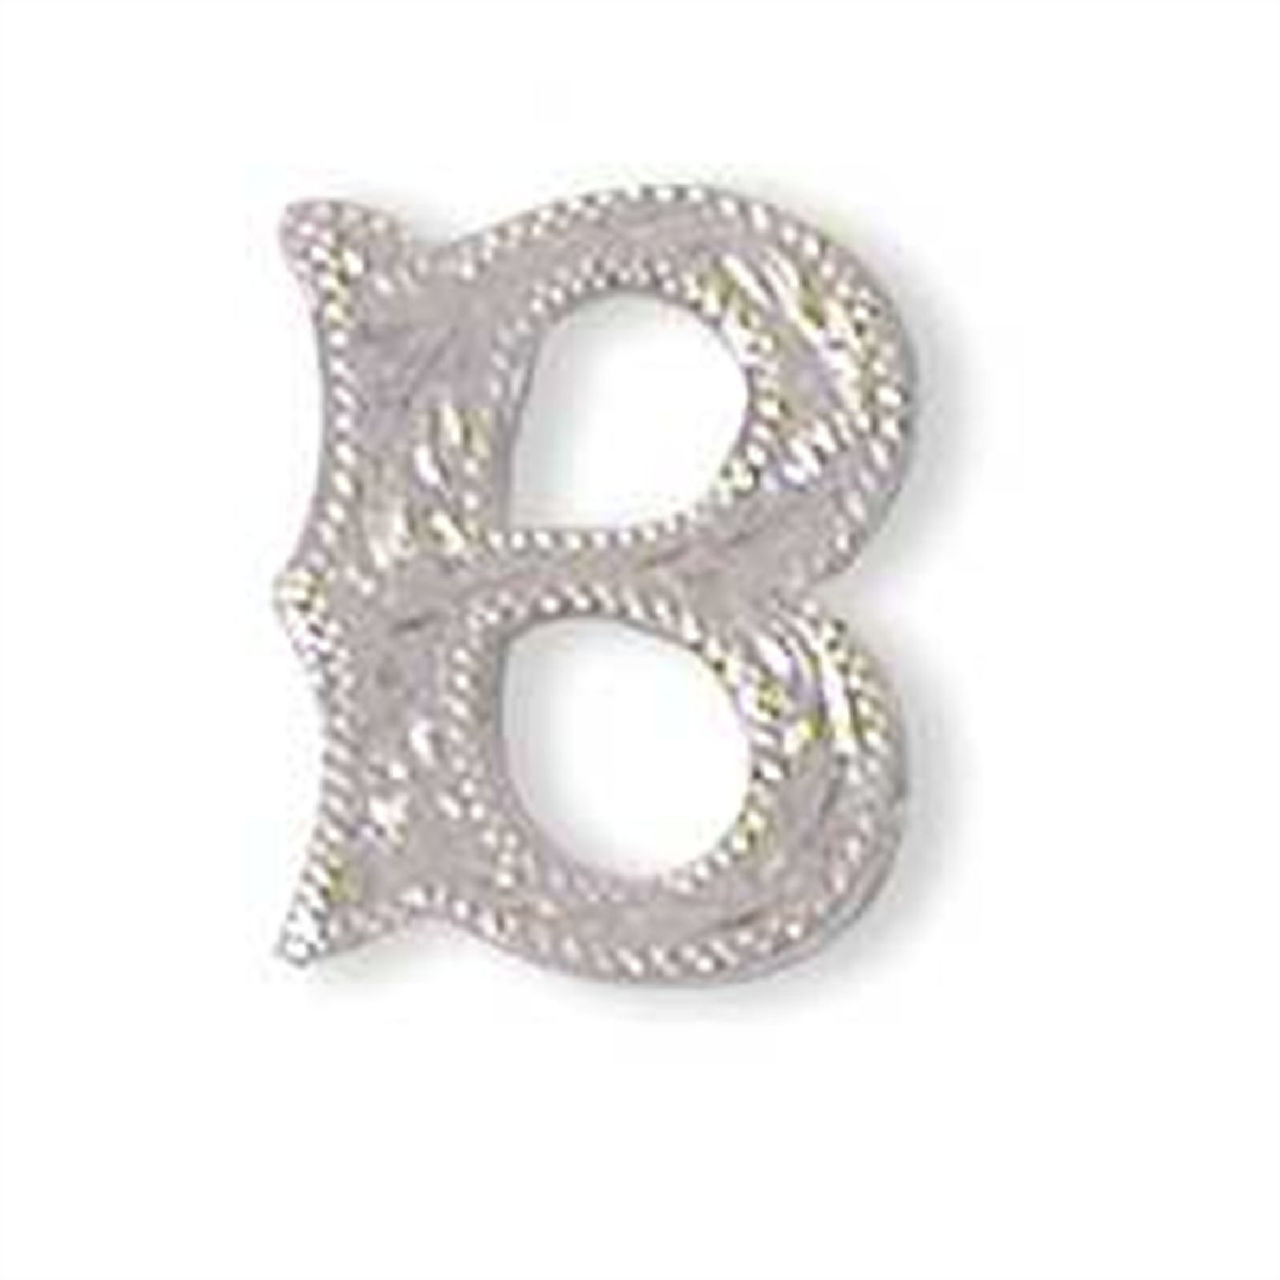 "Alphabet Letter B Shiny Silver Screw Back Concho 3/4"" Tall 1339-02"